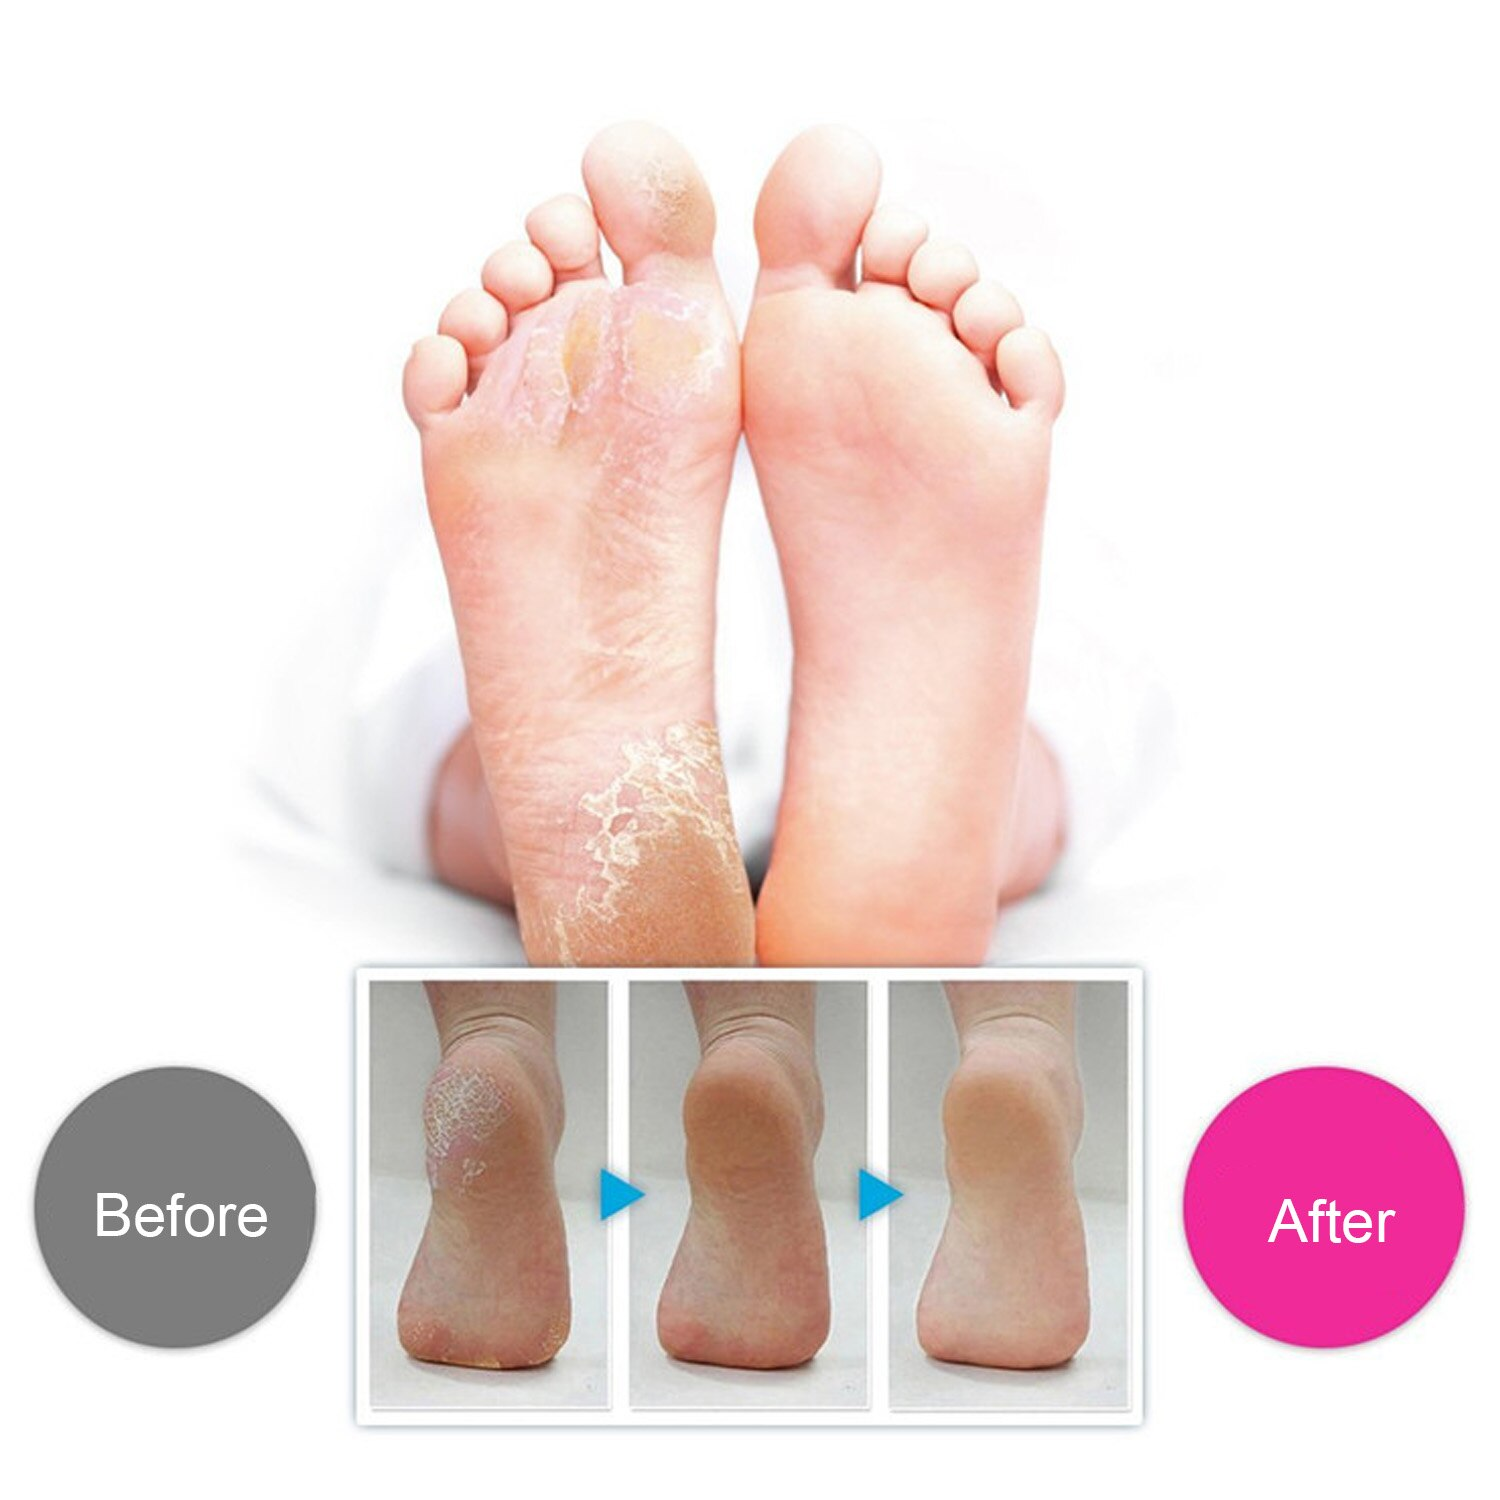 Stainless Steel Foot Shaver Callus Remover Foot Skin Shaver Corn Cuticle Cutter Remover Rasp Pedicure File Foot Dead Skin Shaver